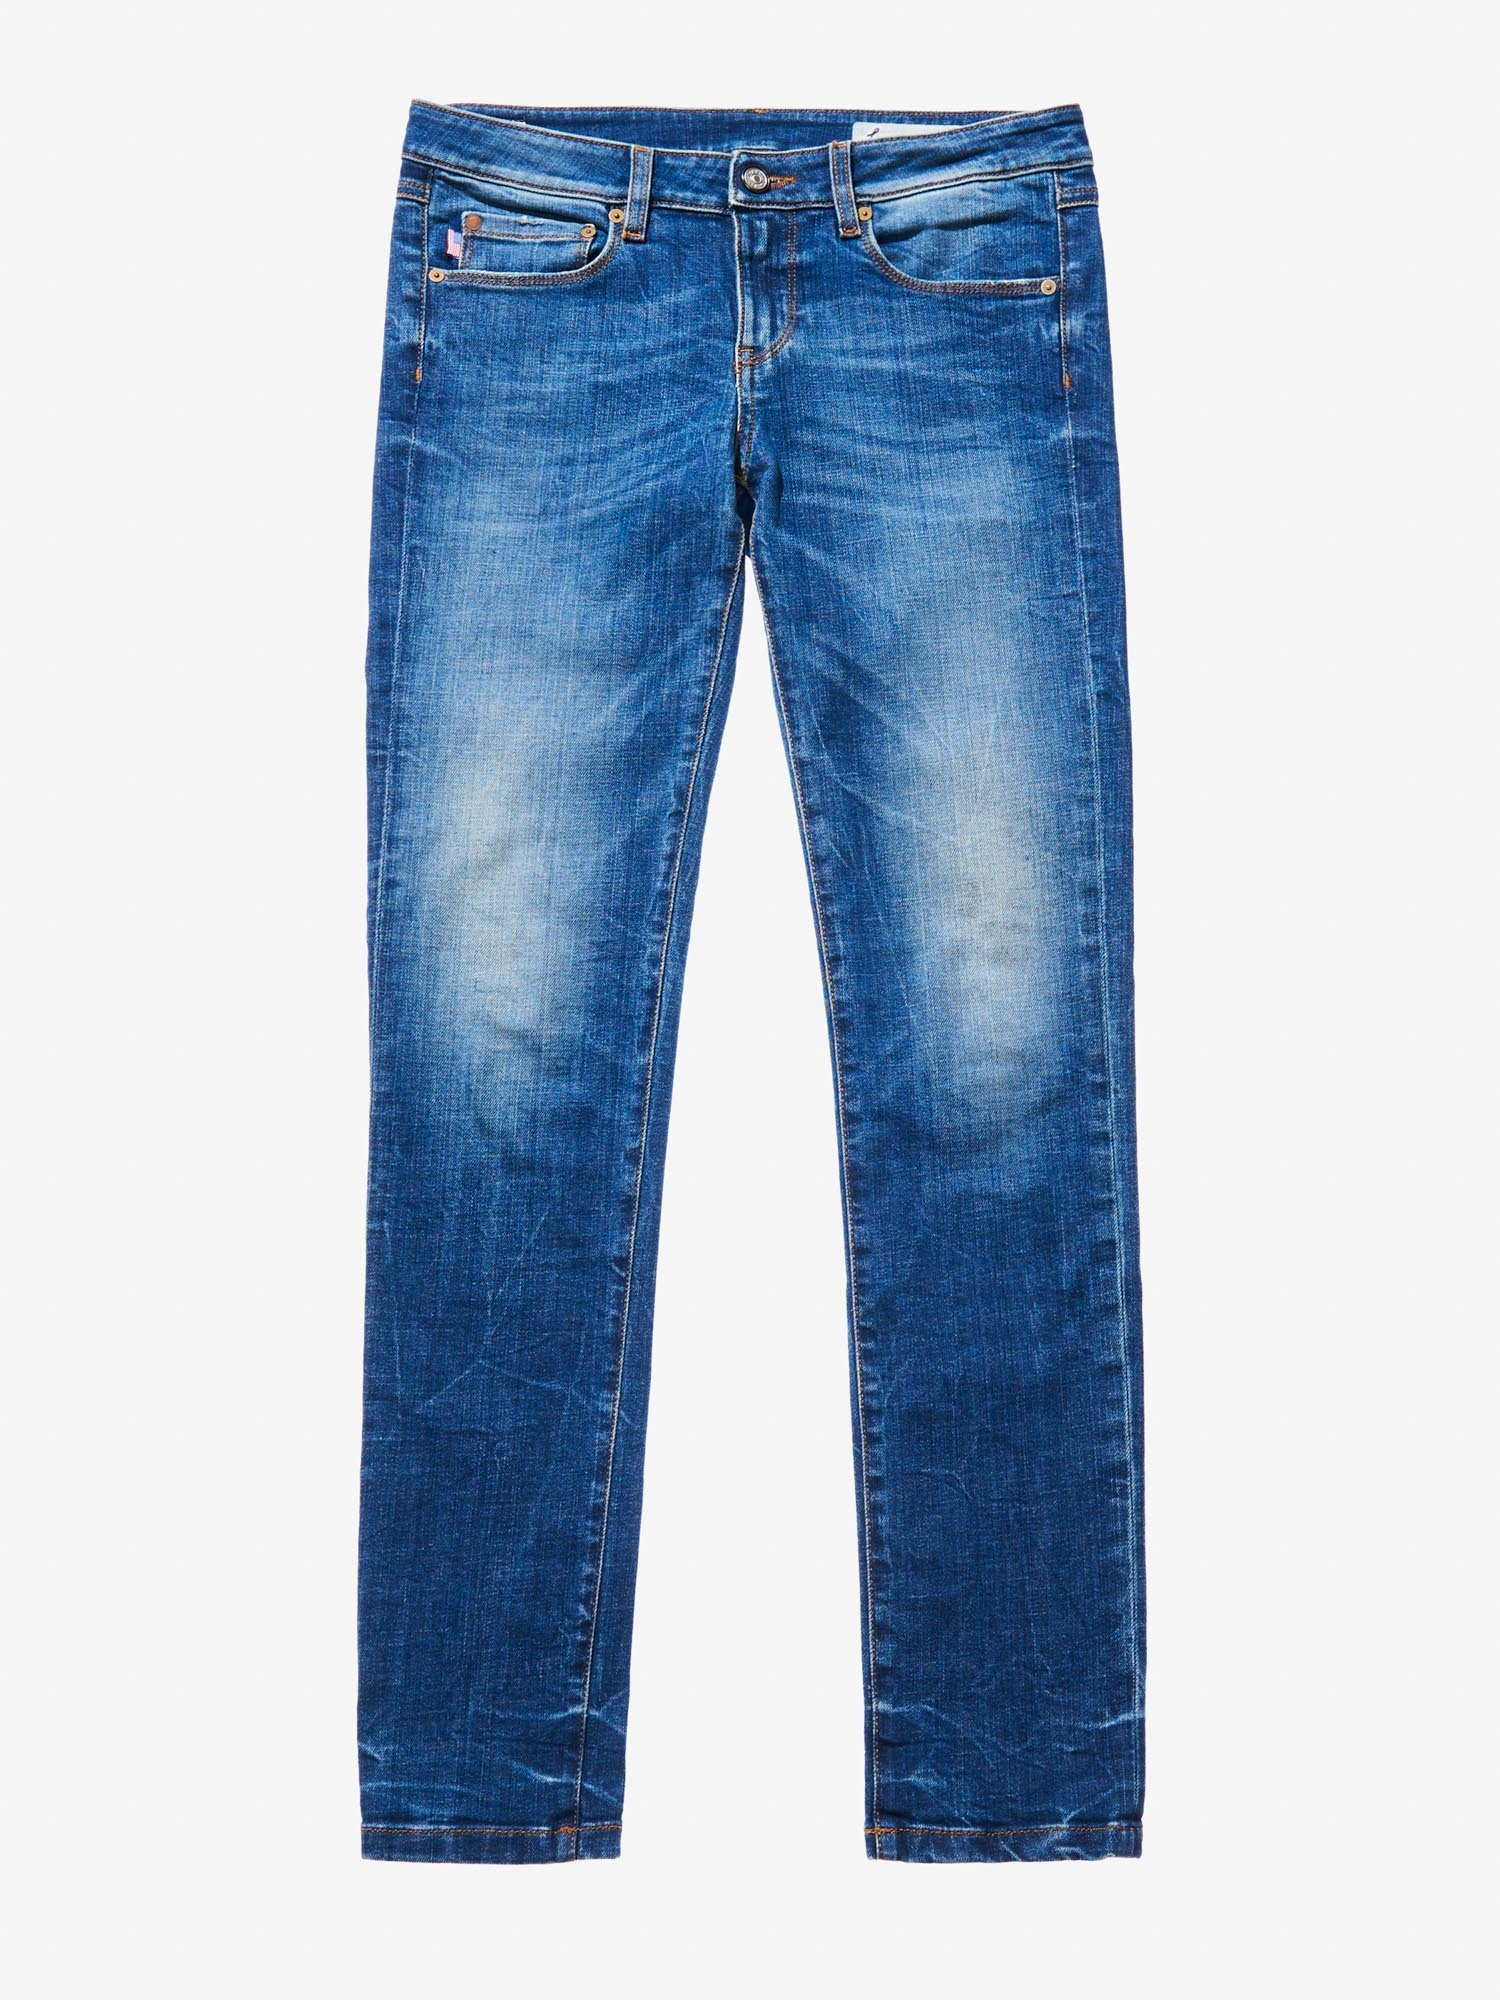 DENIM BOOT CUT - Blauer